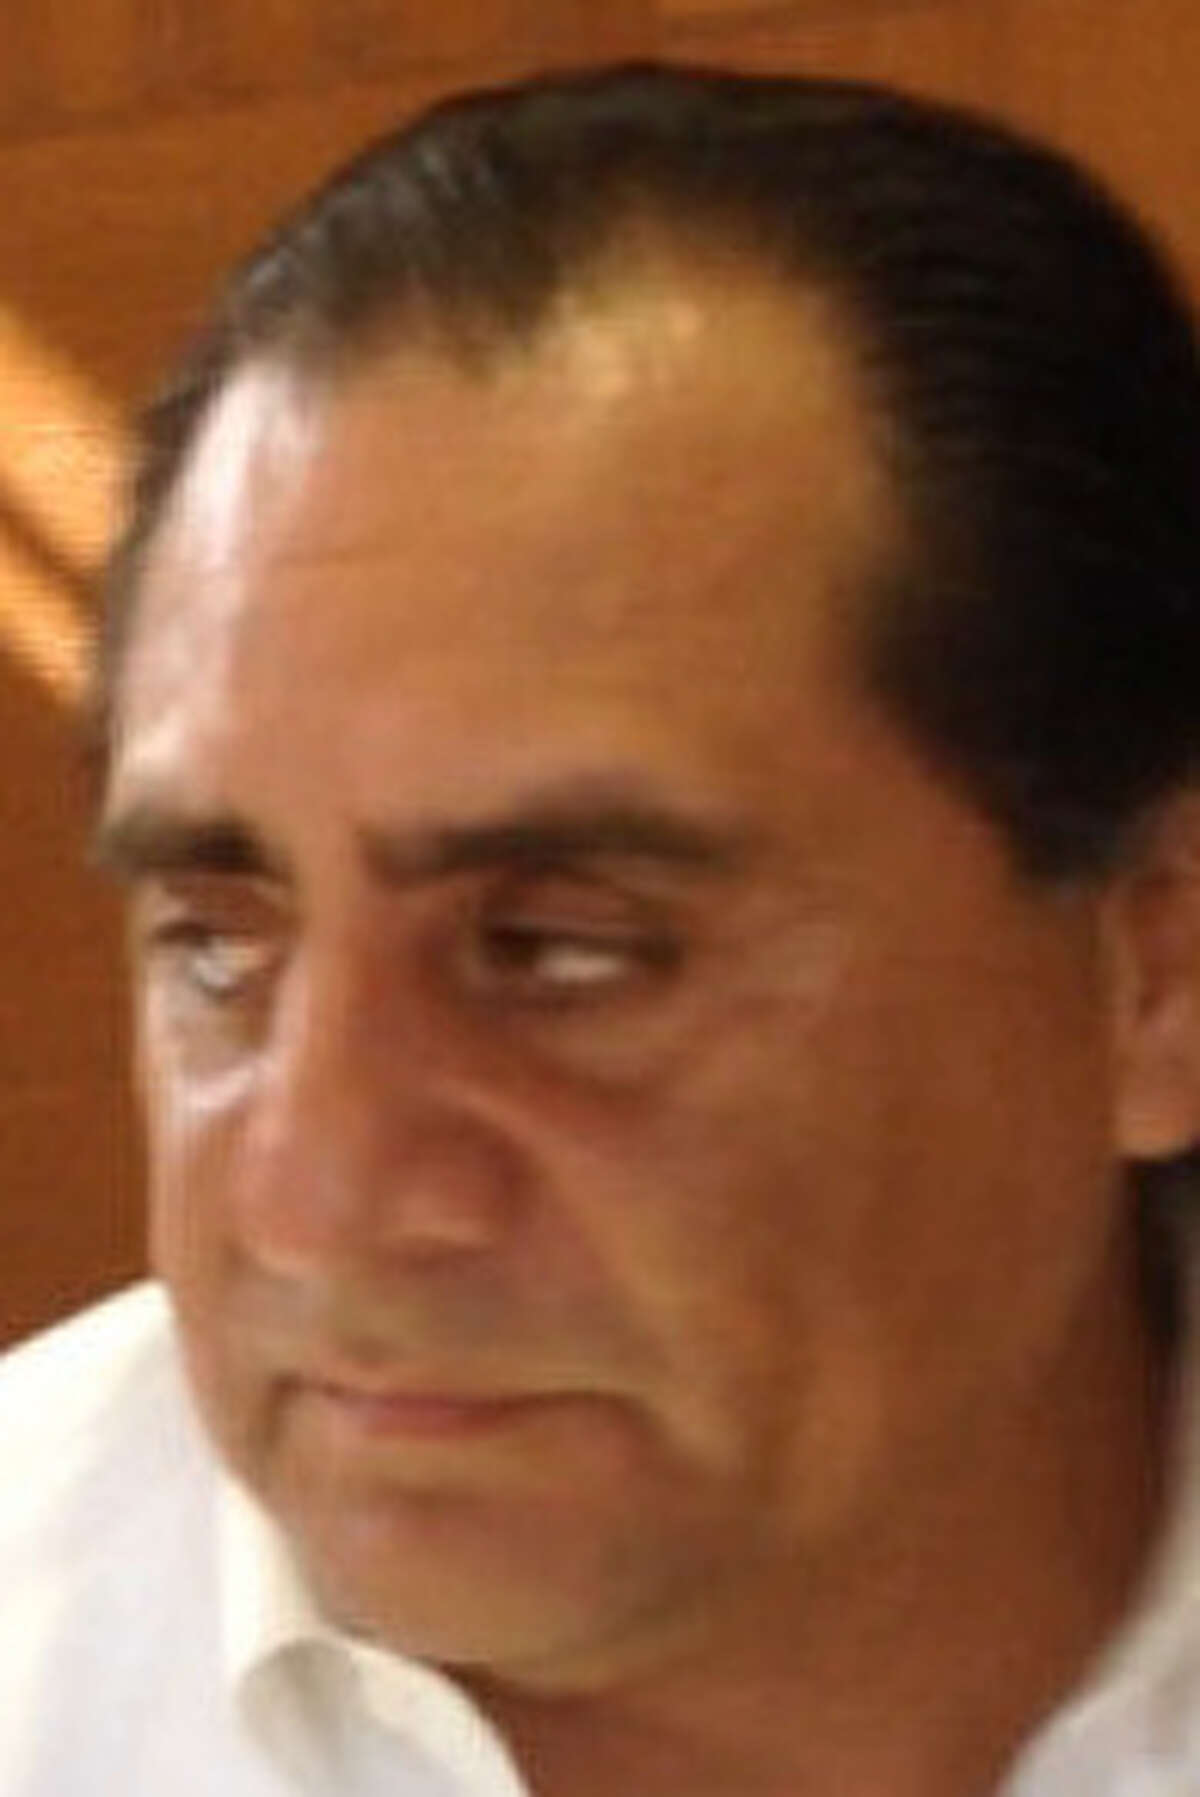 Laredo City Council Member Jorge Vera is booked into custody by the Loredo Police Department.